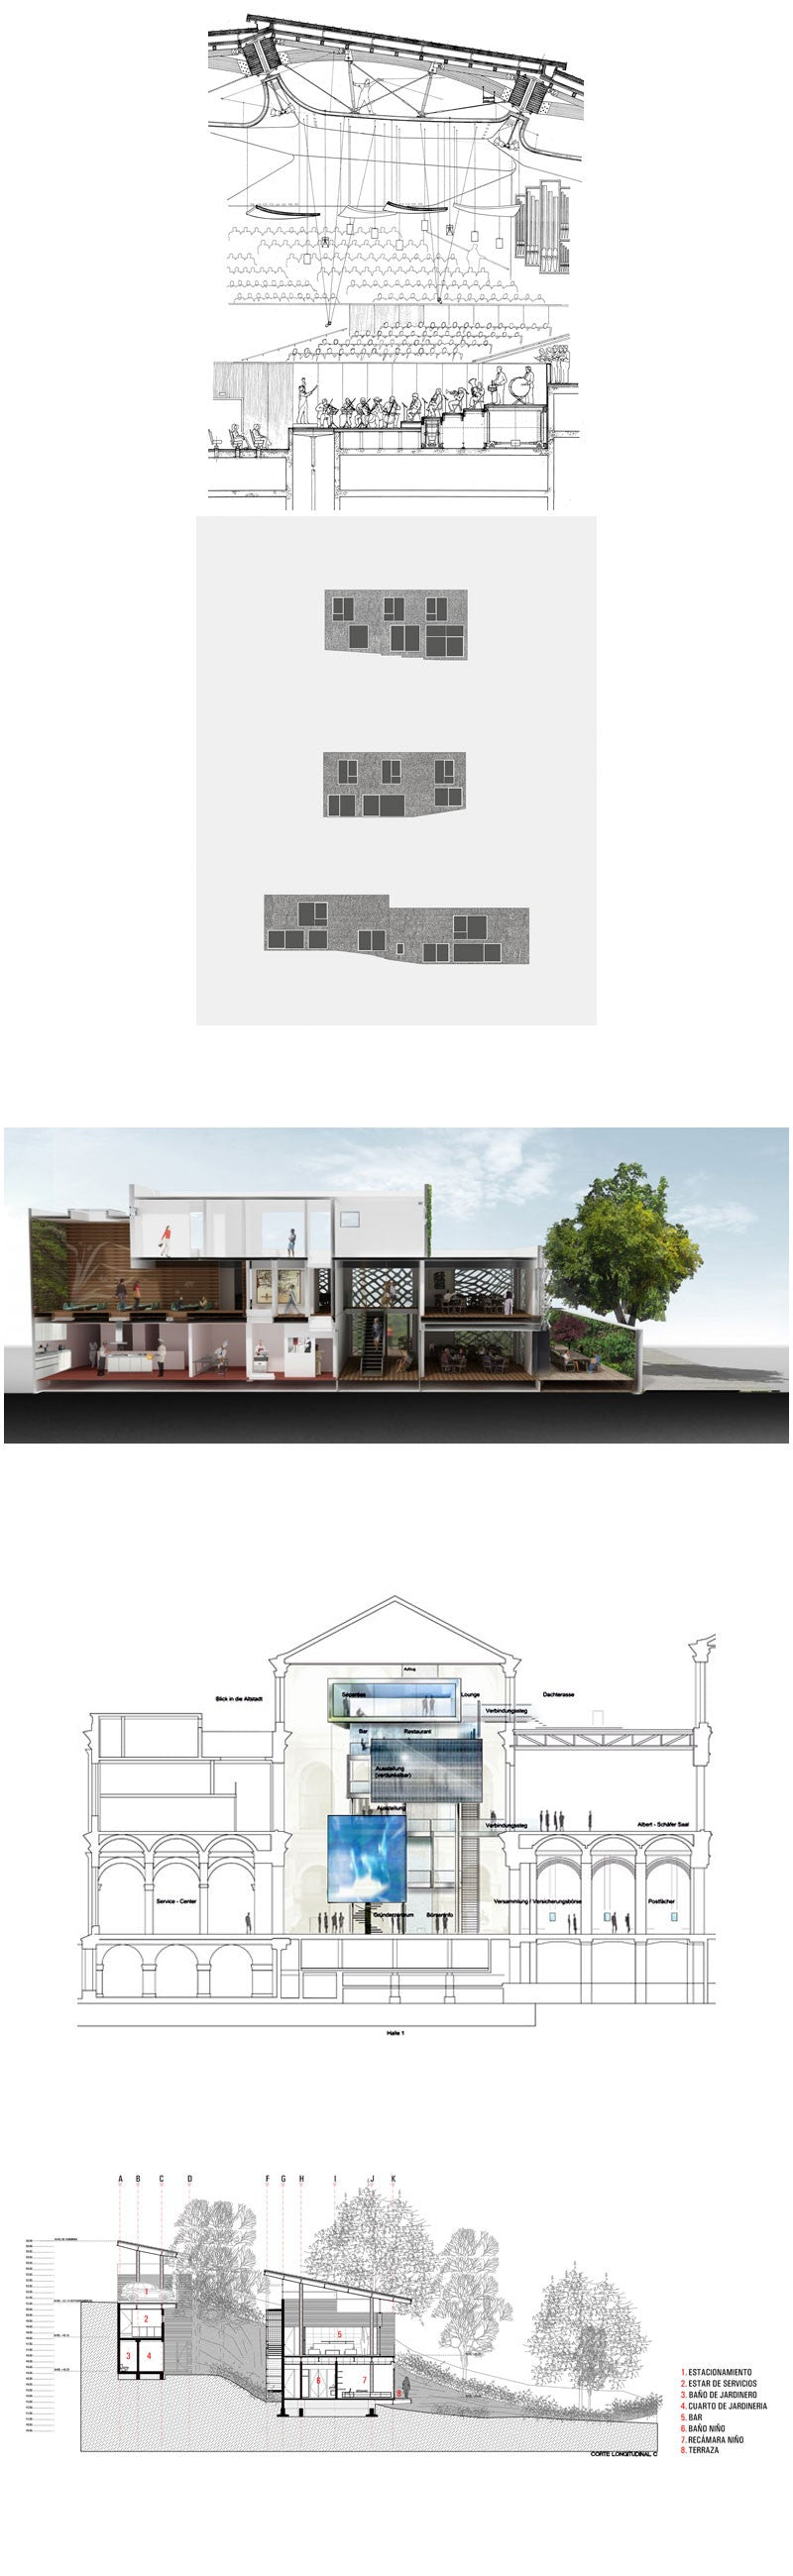 Architectural Sections And Elevations Gallery V 3 Cad